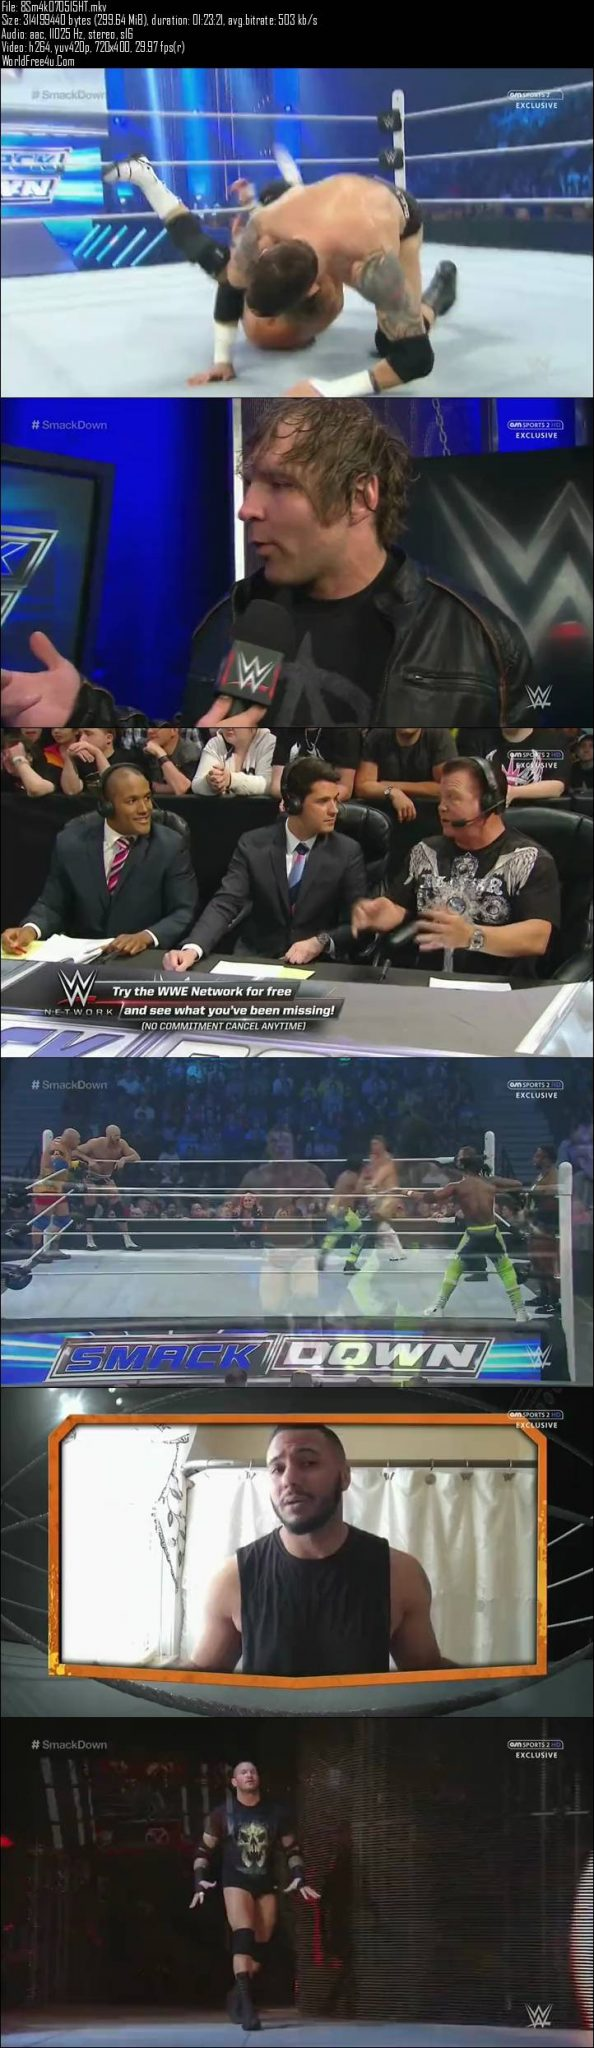 WWE Thursday Night SmackDown 7th May (2015)